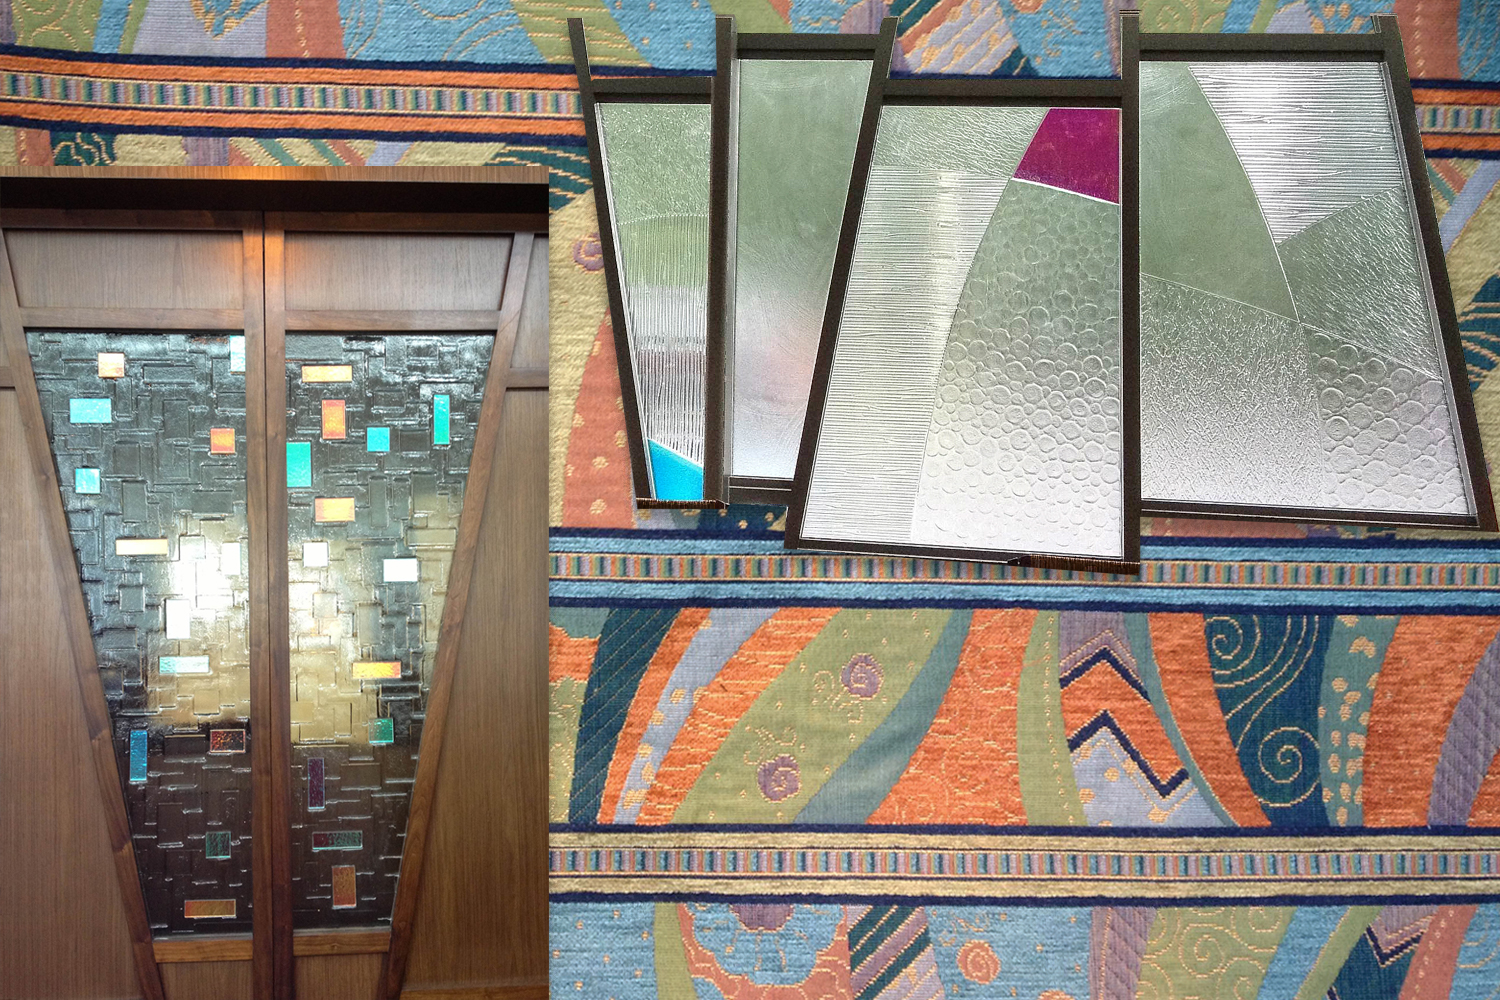 Lieberman Chapel Ark; Window detail–note the curved shapes and varied textures; Background: the FABRIC!